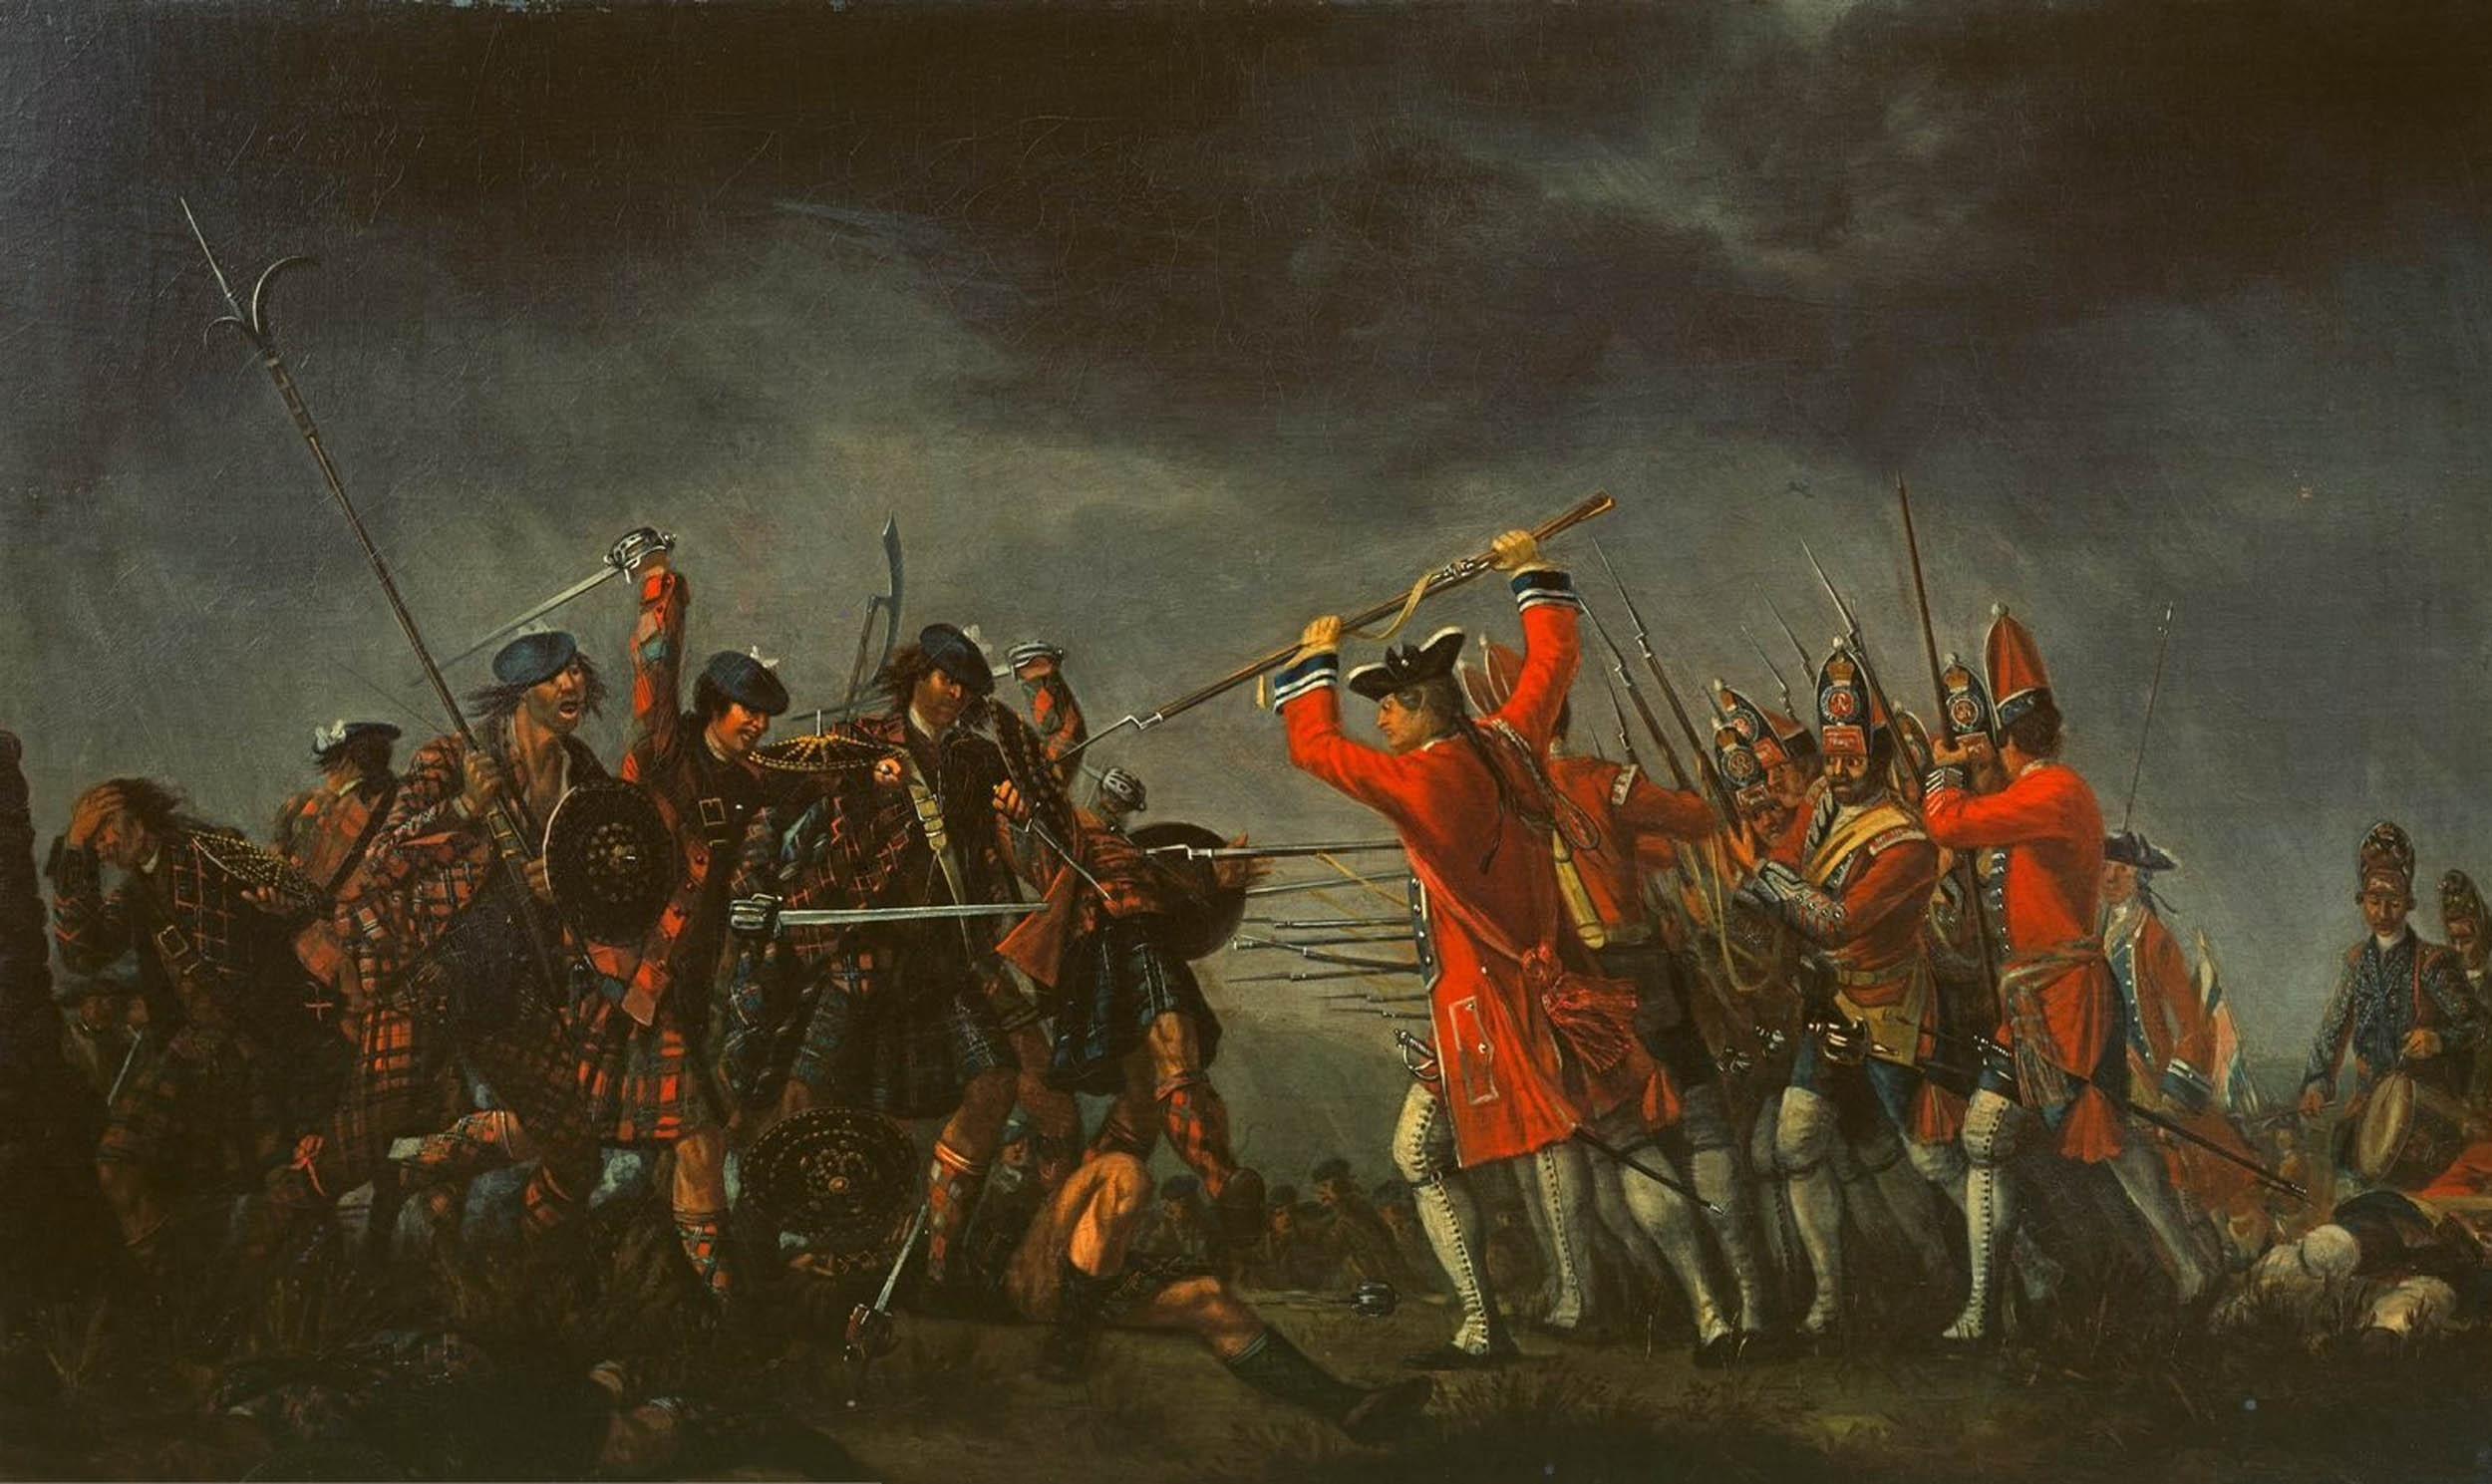 A depiction of the Battle of Culloden, where James and John Rattray fought alongside Bonnie Prince Charlie